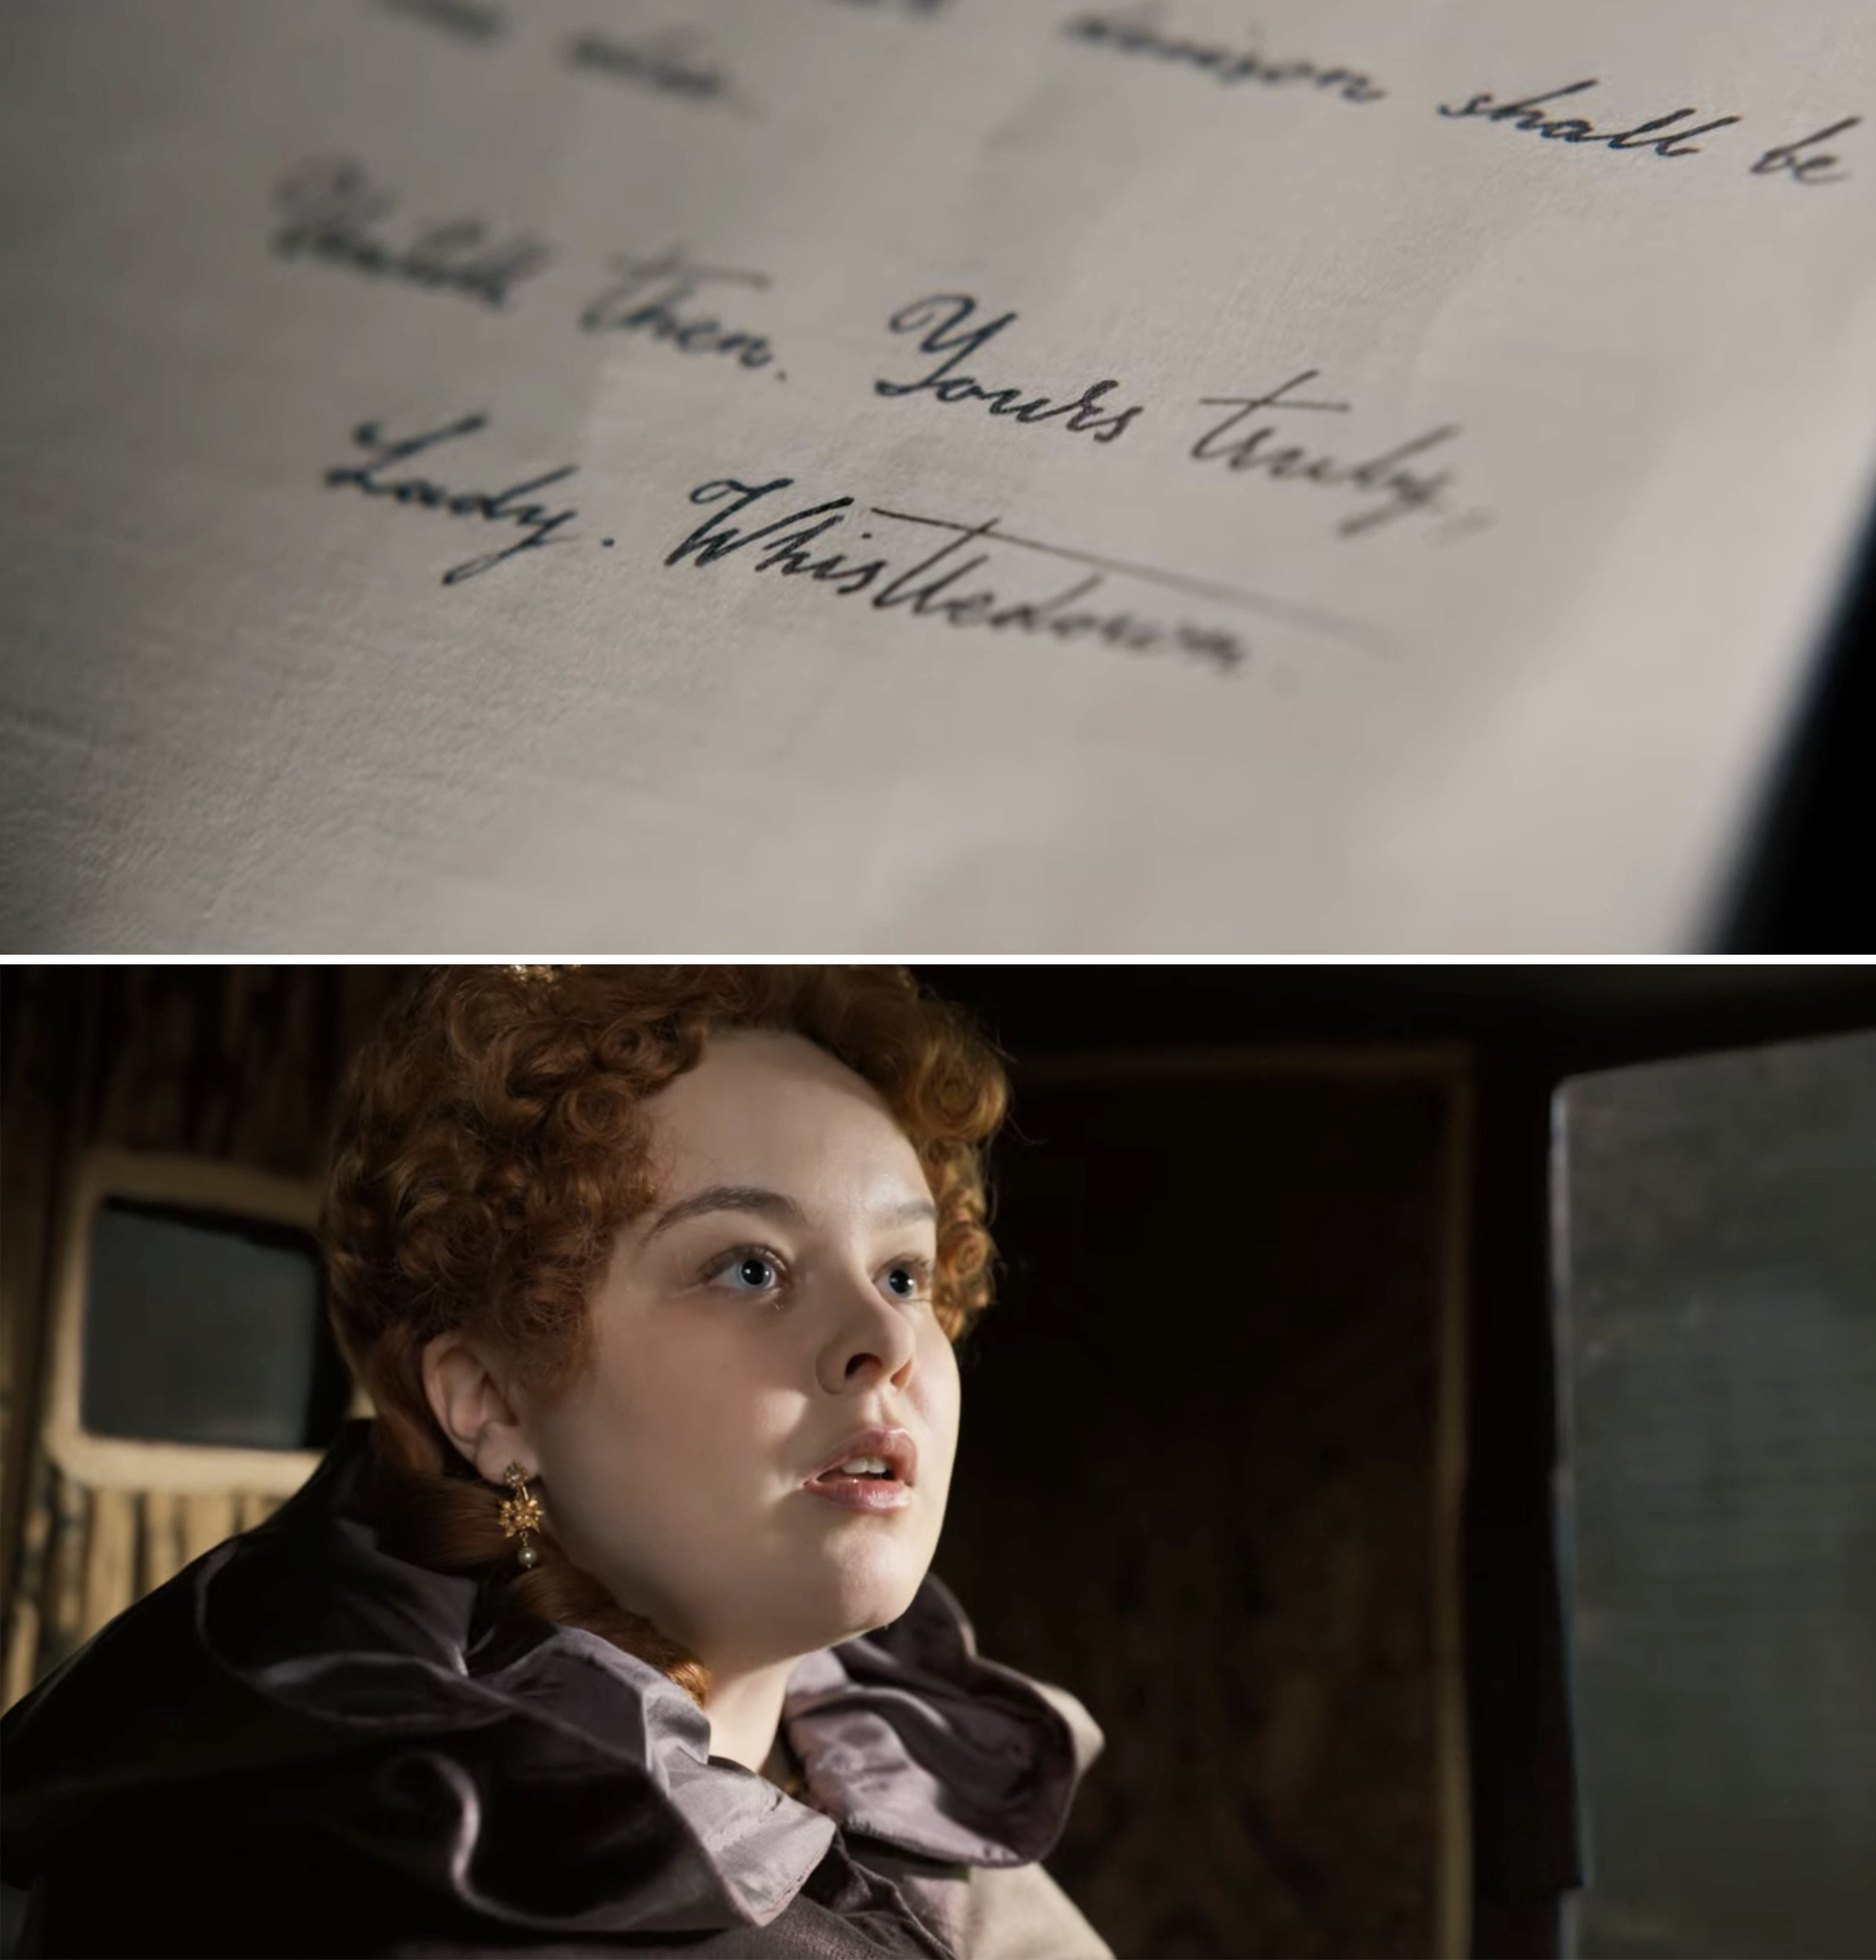 Penelope holding Lady Whistledown papers in a carriage